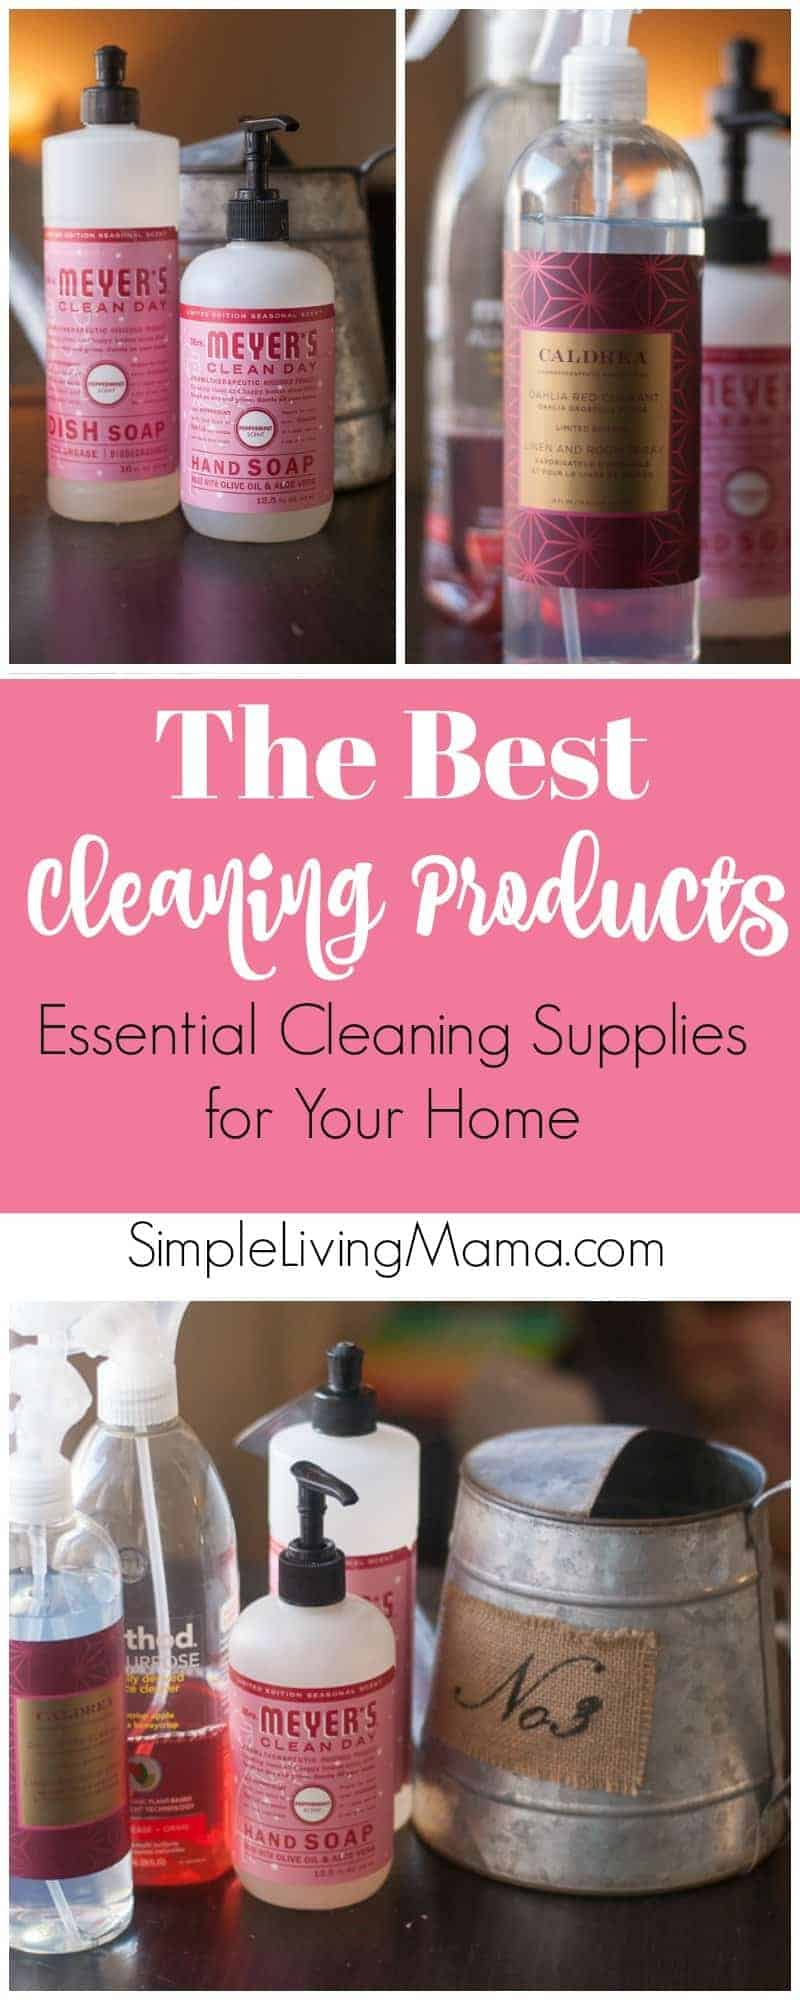 These are the best cleaning products for 2018. These essential cleaning supplies not only clean your home well, they smell awesome!